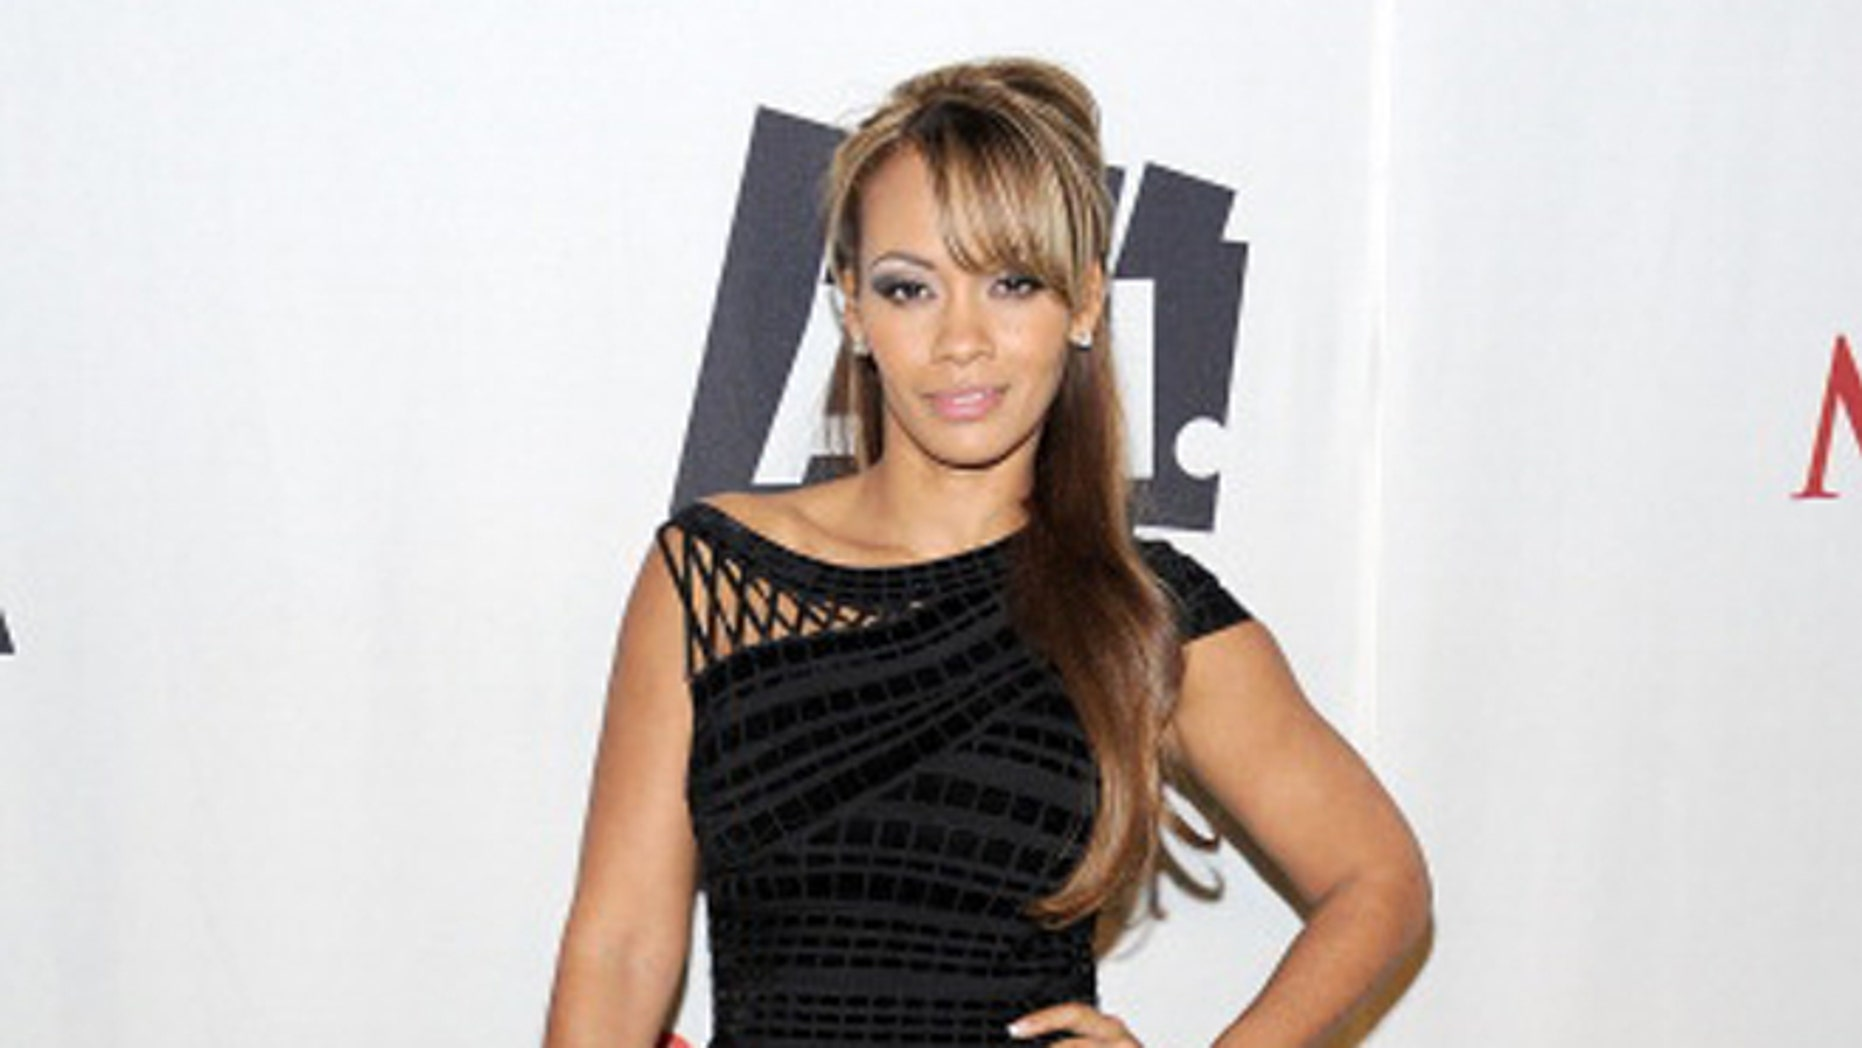 DALLAS, TX - FEBRUARY: Evelyn Lozada poses with AOL at the Maxim Party Powered by Motorola Xoom at Centennial Hall at Fair Park  in Dallas, Texas.